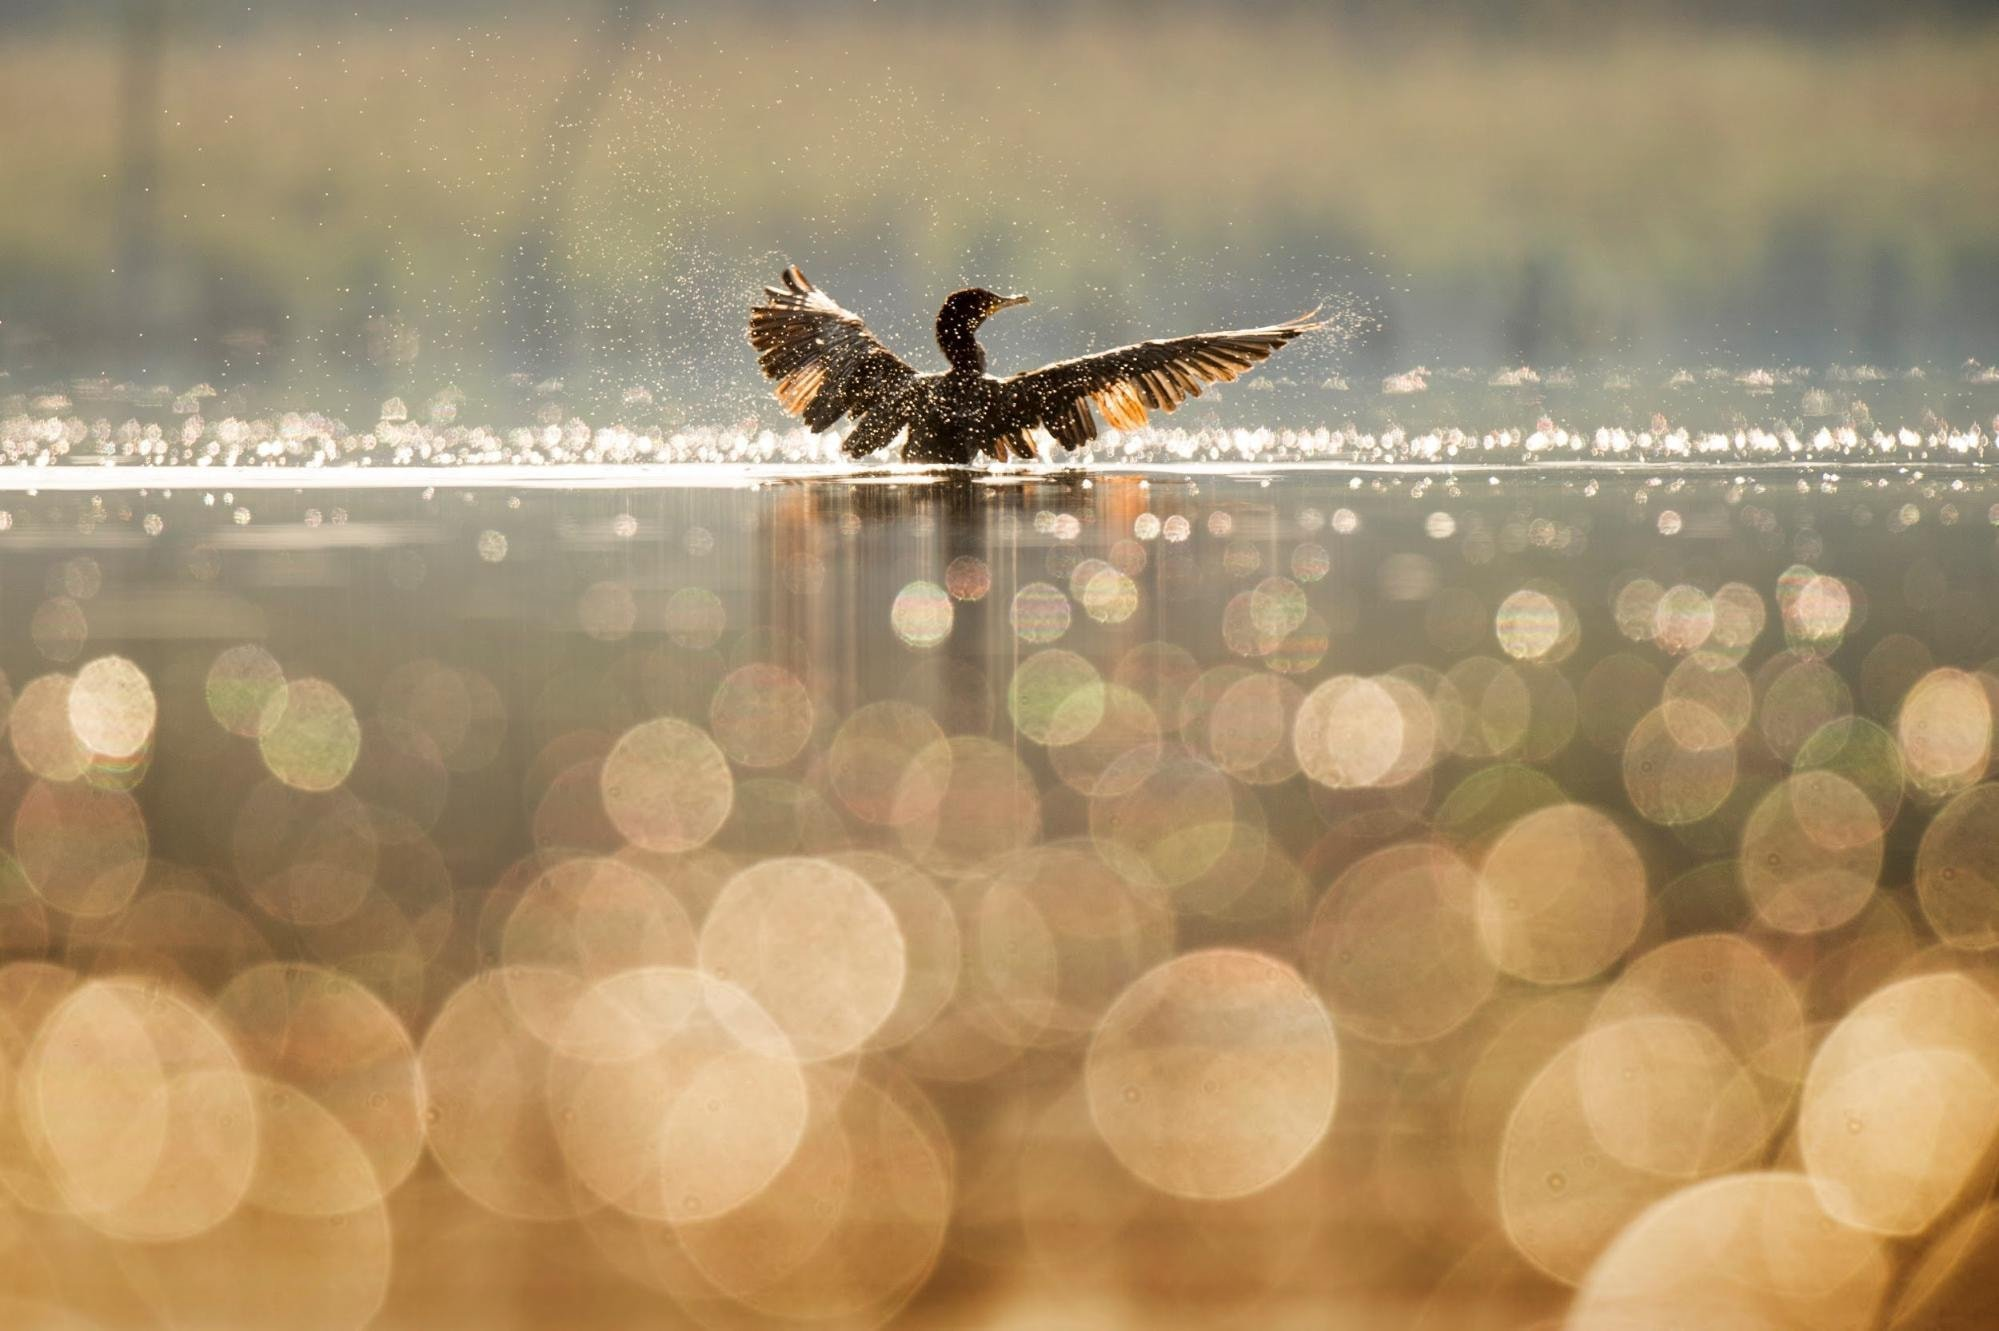 Duck bokeh effect in the foreground